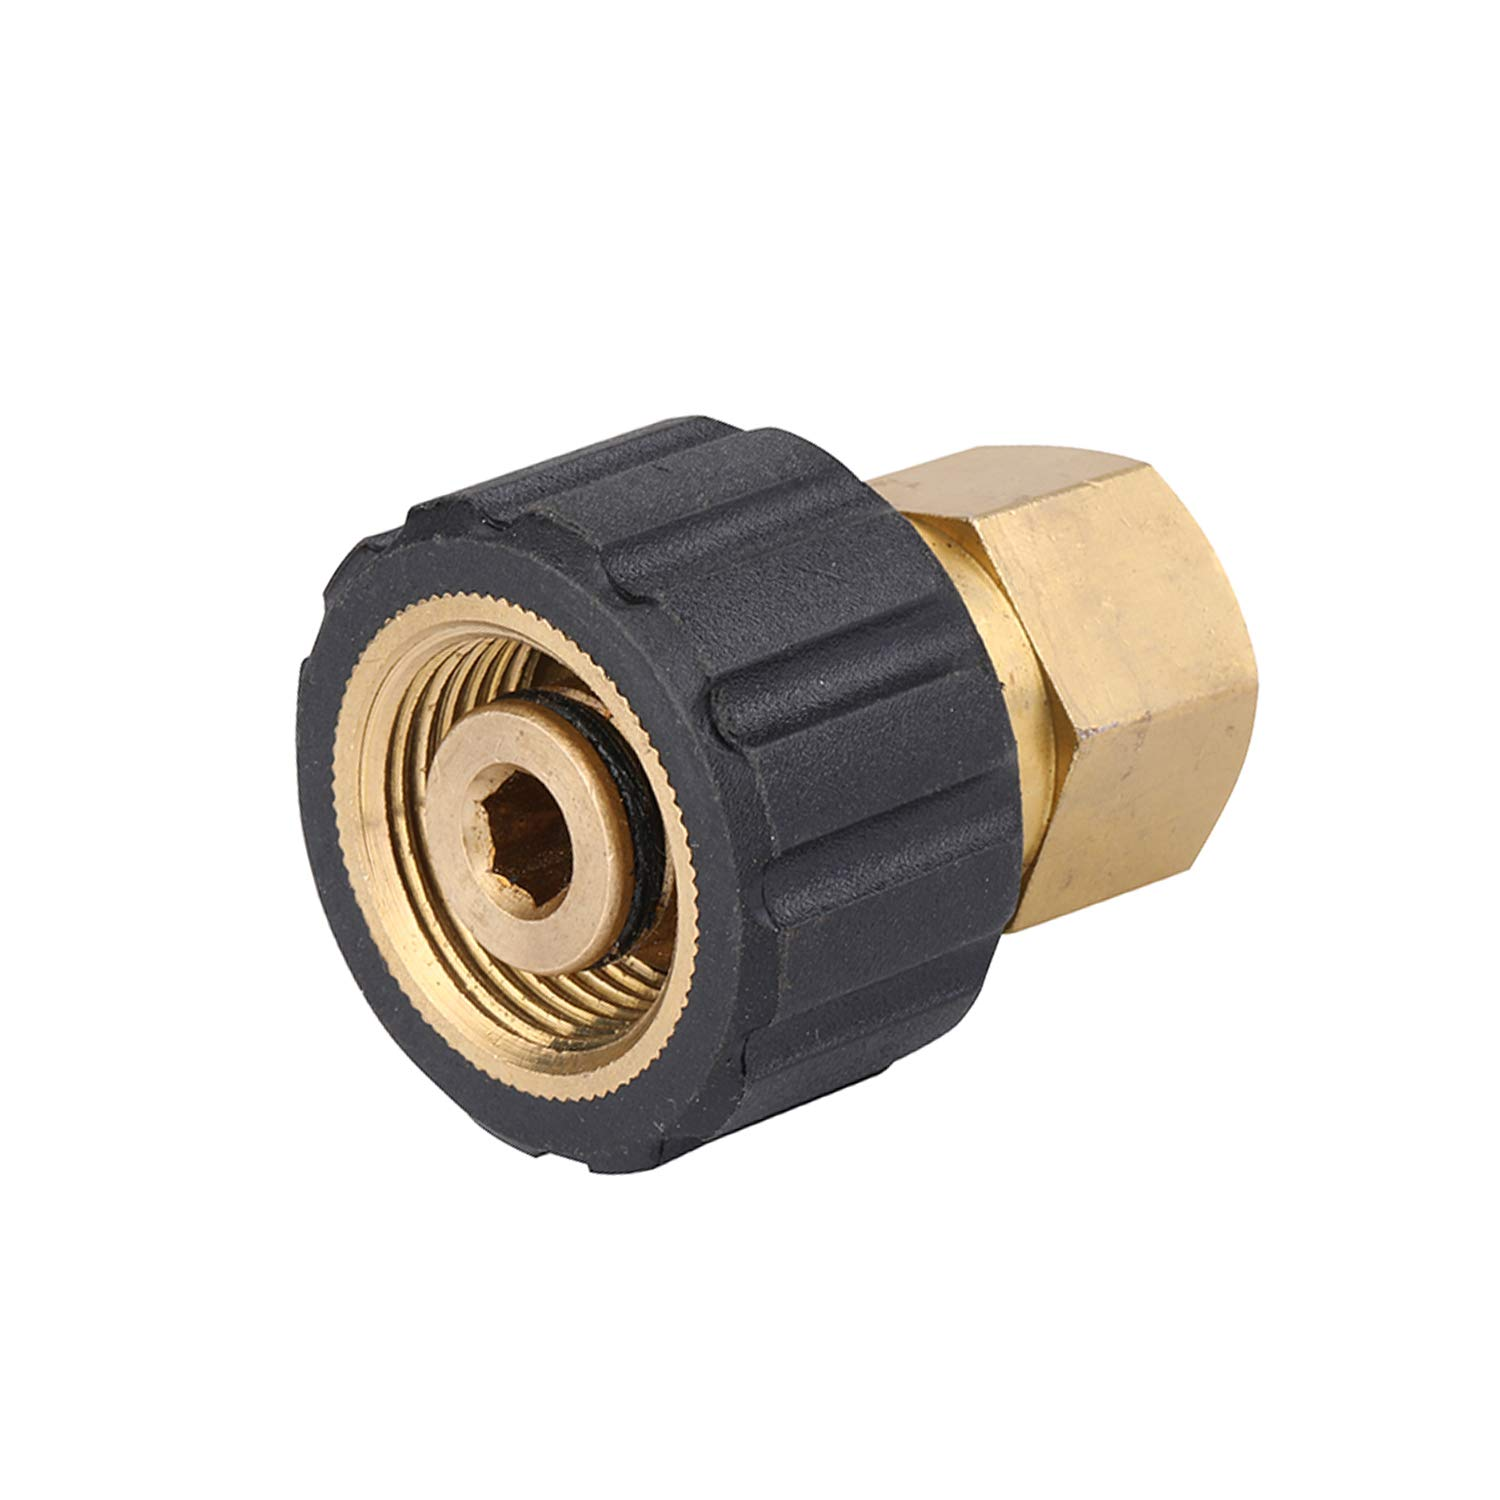 Challco Pressure Washer Adapter 3/8'' Female Thread Metric Socket M22-14mm Connetor by Challco